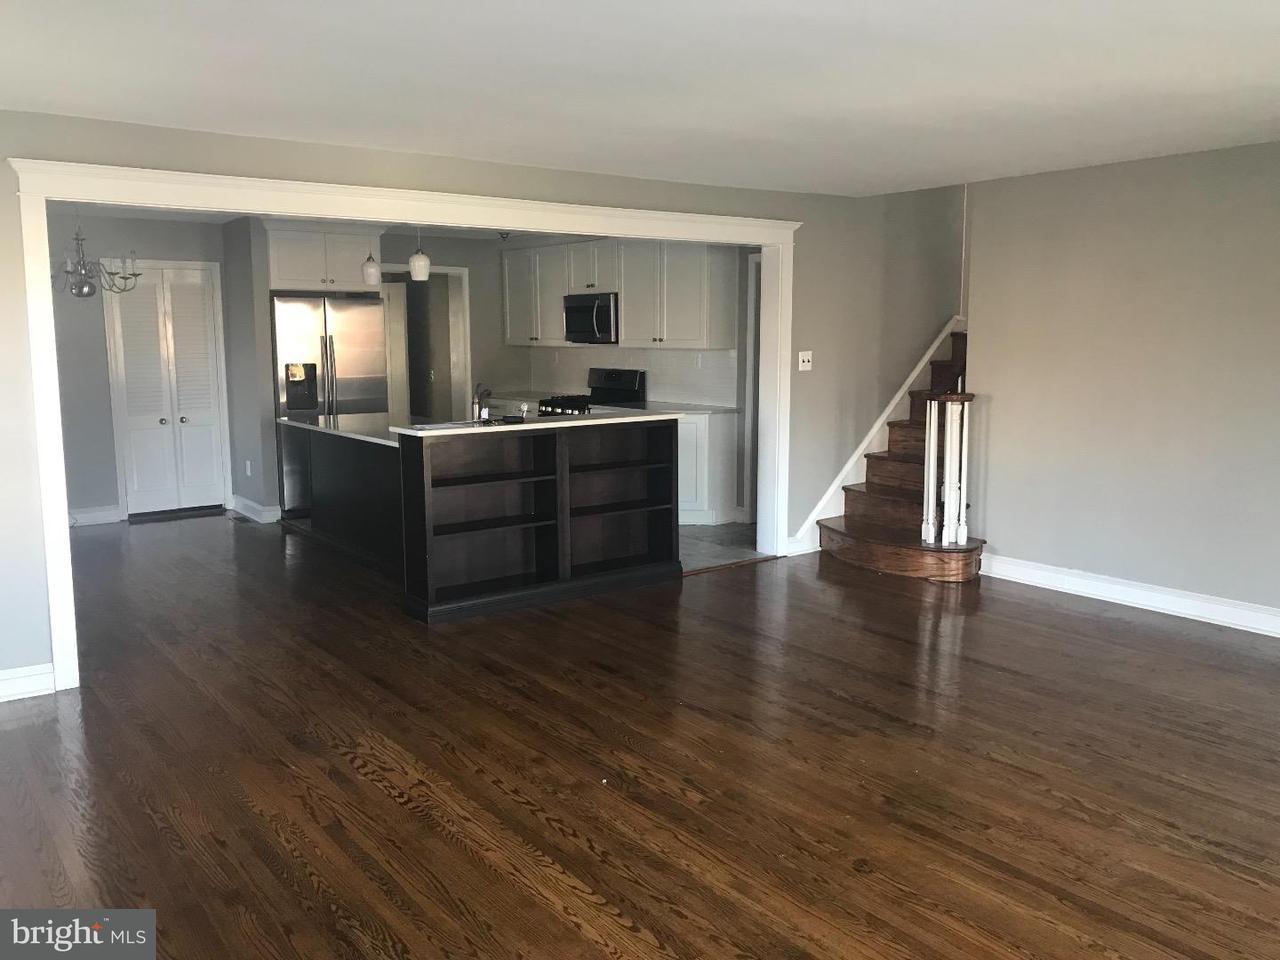 Single Family Home for Rent at 108 GOVERNORS Drive Wallingford, Pennsylvania 19086 United States